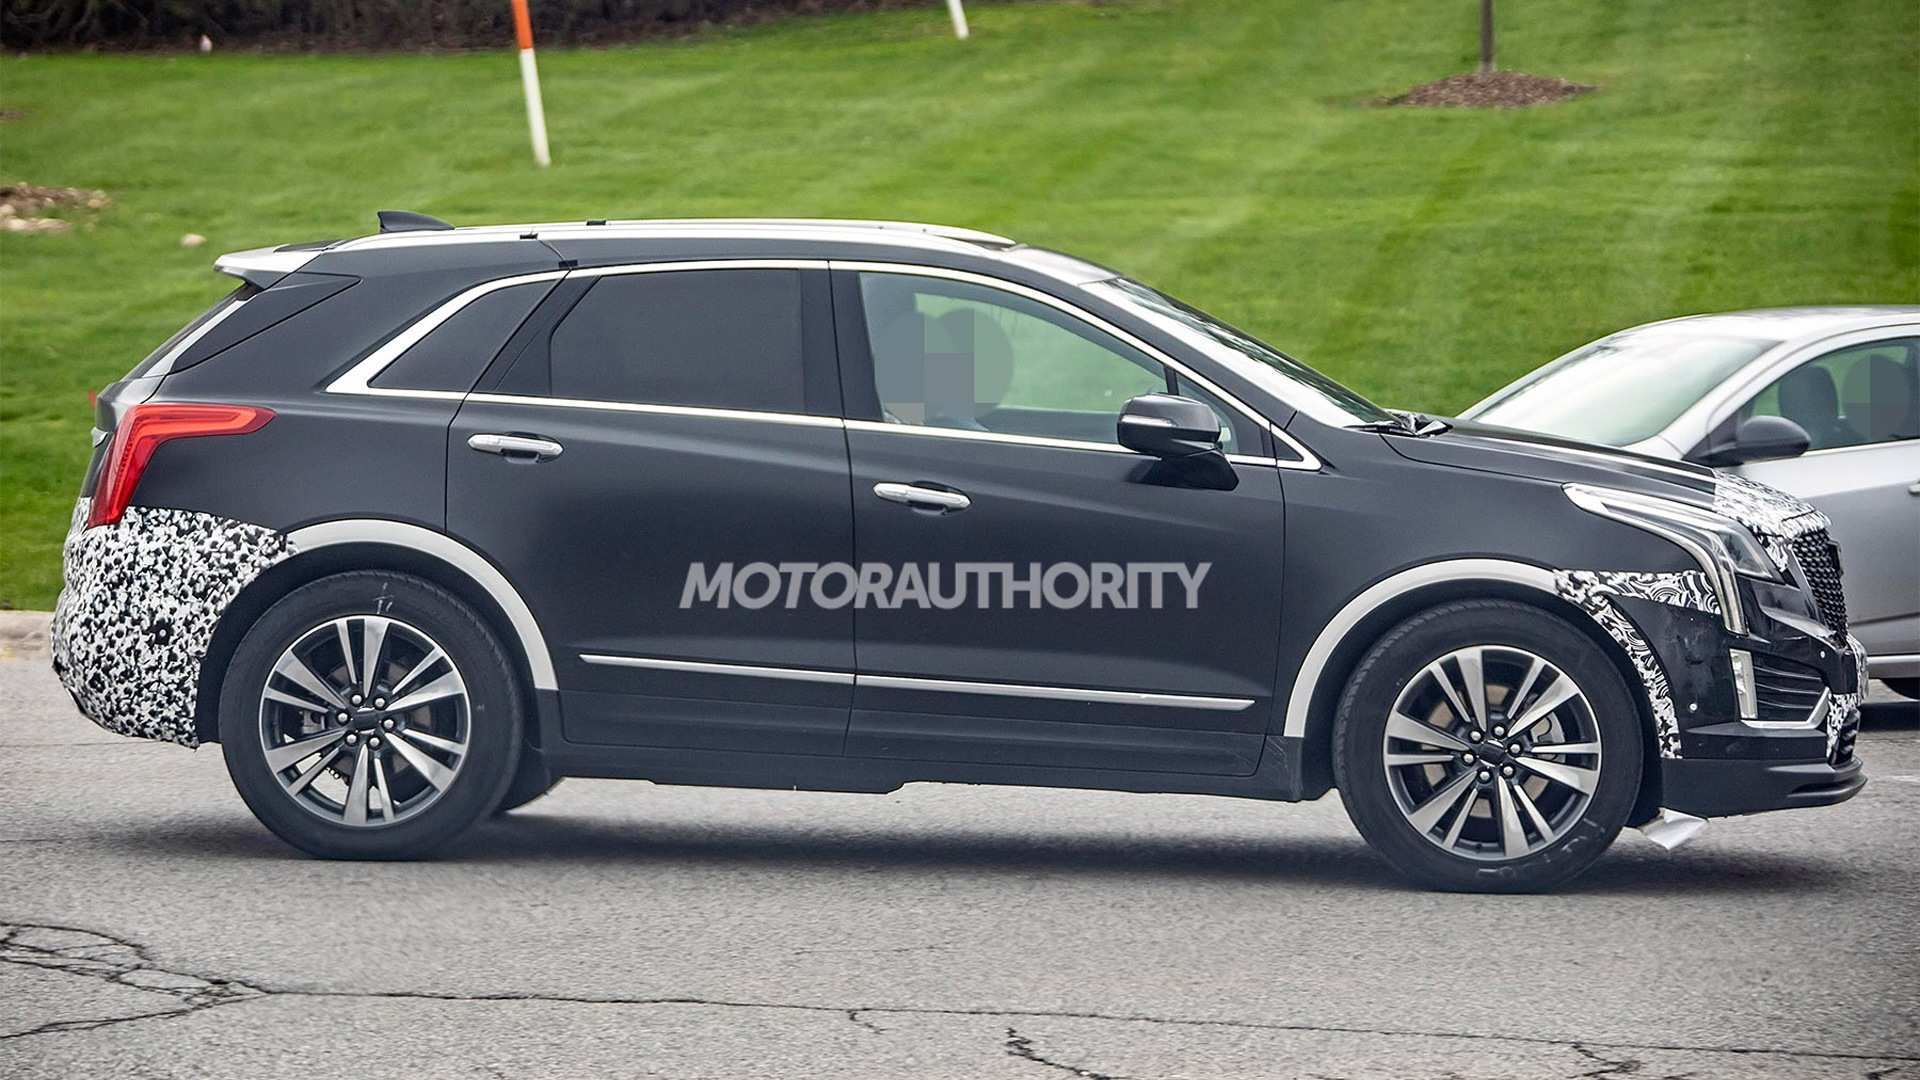 50 All New Spy Shots Cadillac Xt5 Review by Spy Shots Cadillac Xt5